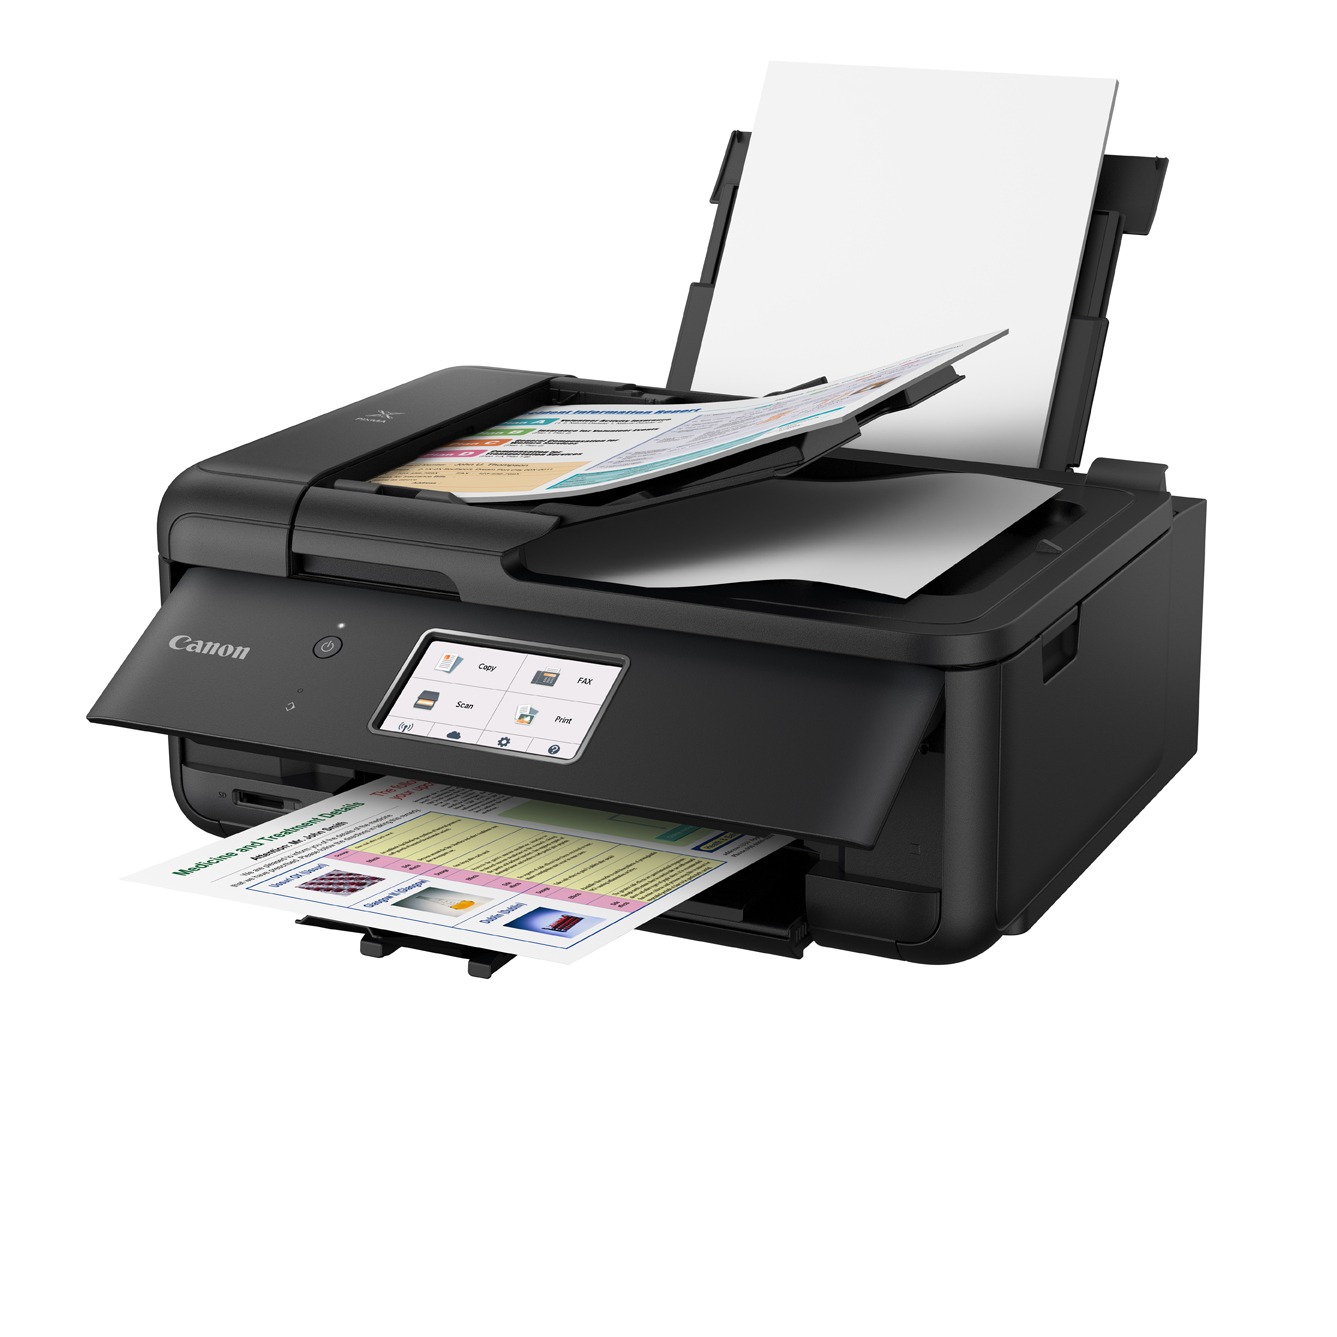 Canon Pixma Tr8520 Wireless Home Office All In One Printer ...